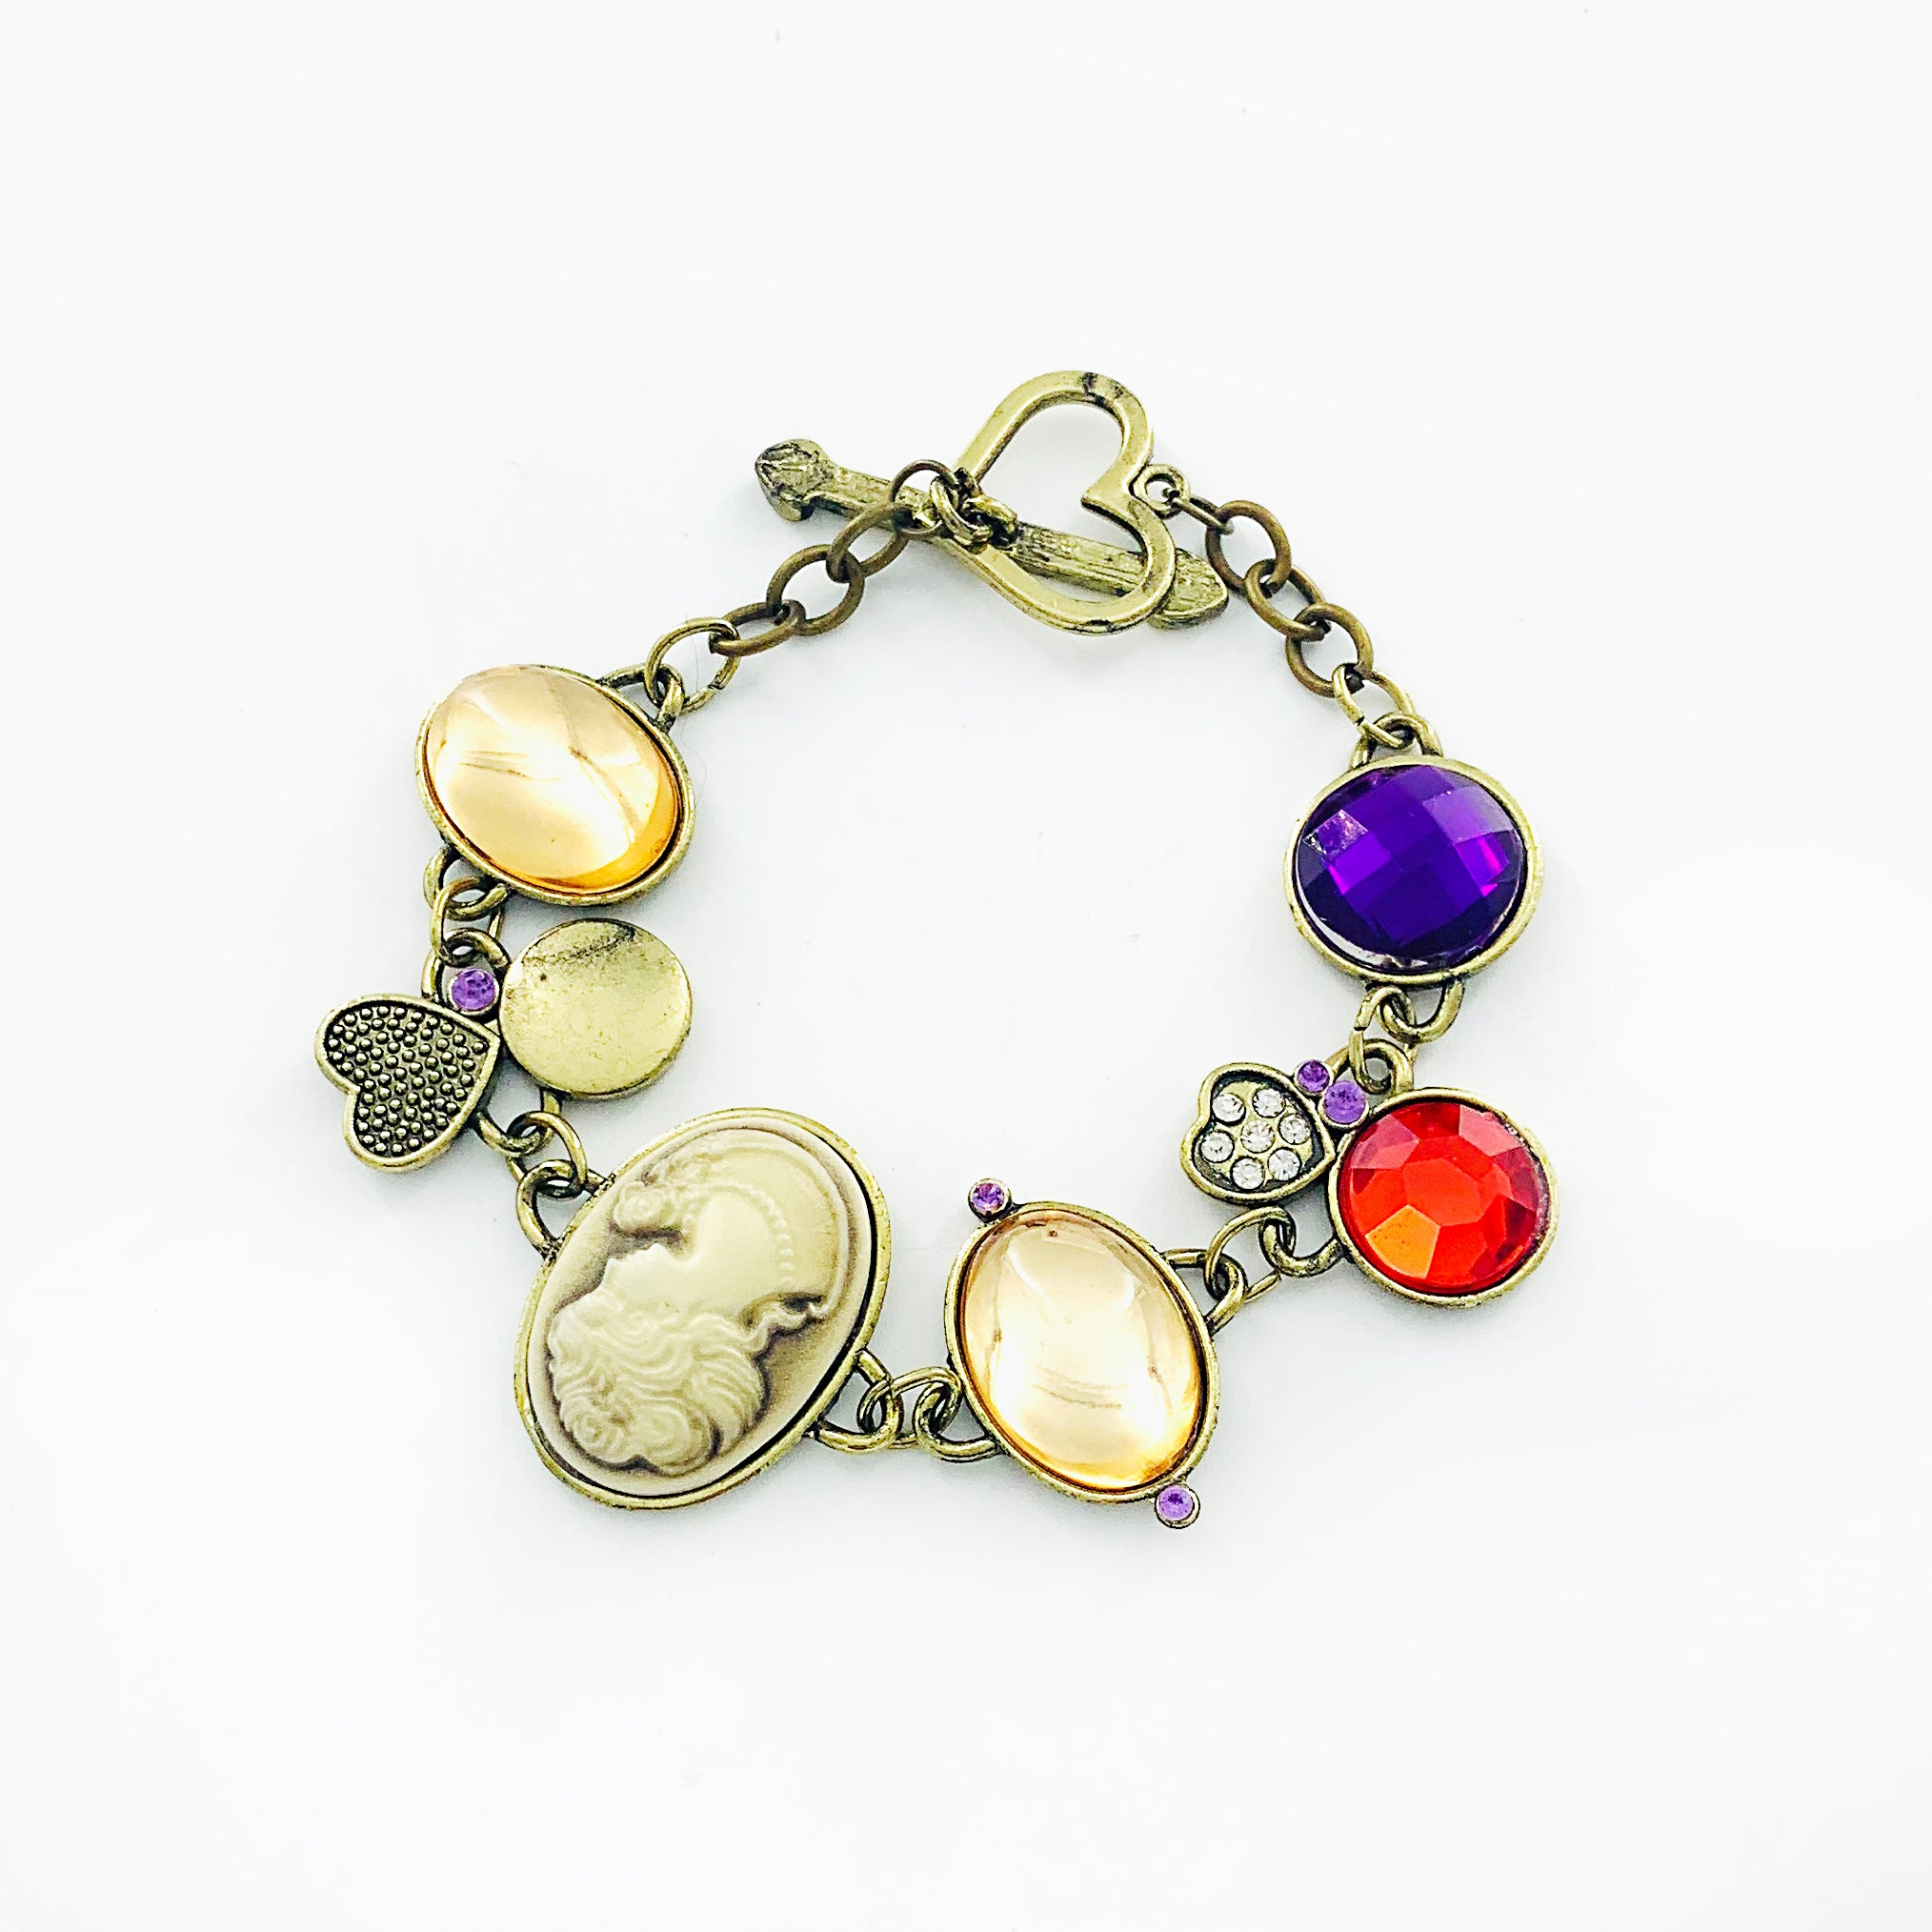 Vintage-styled bracelet with colourful stones